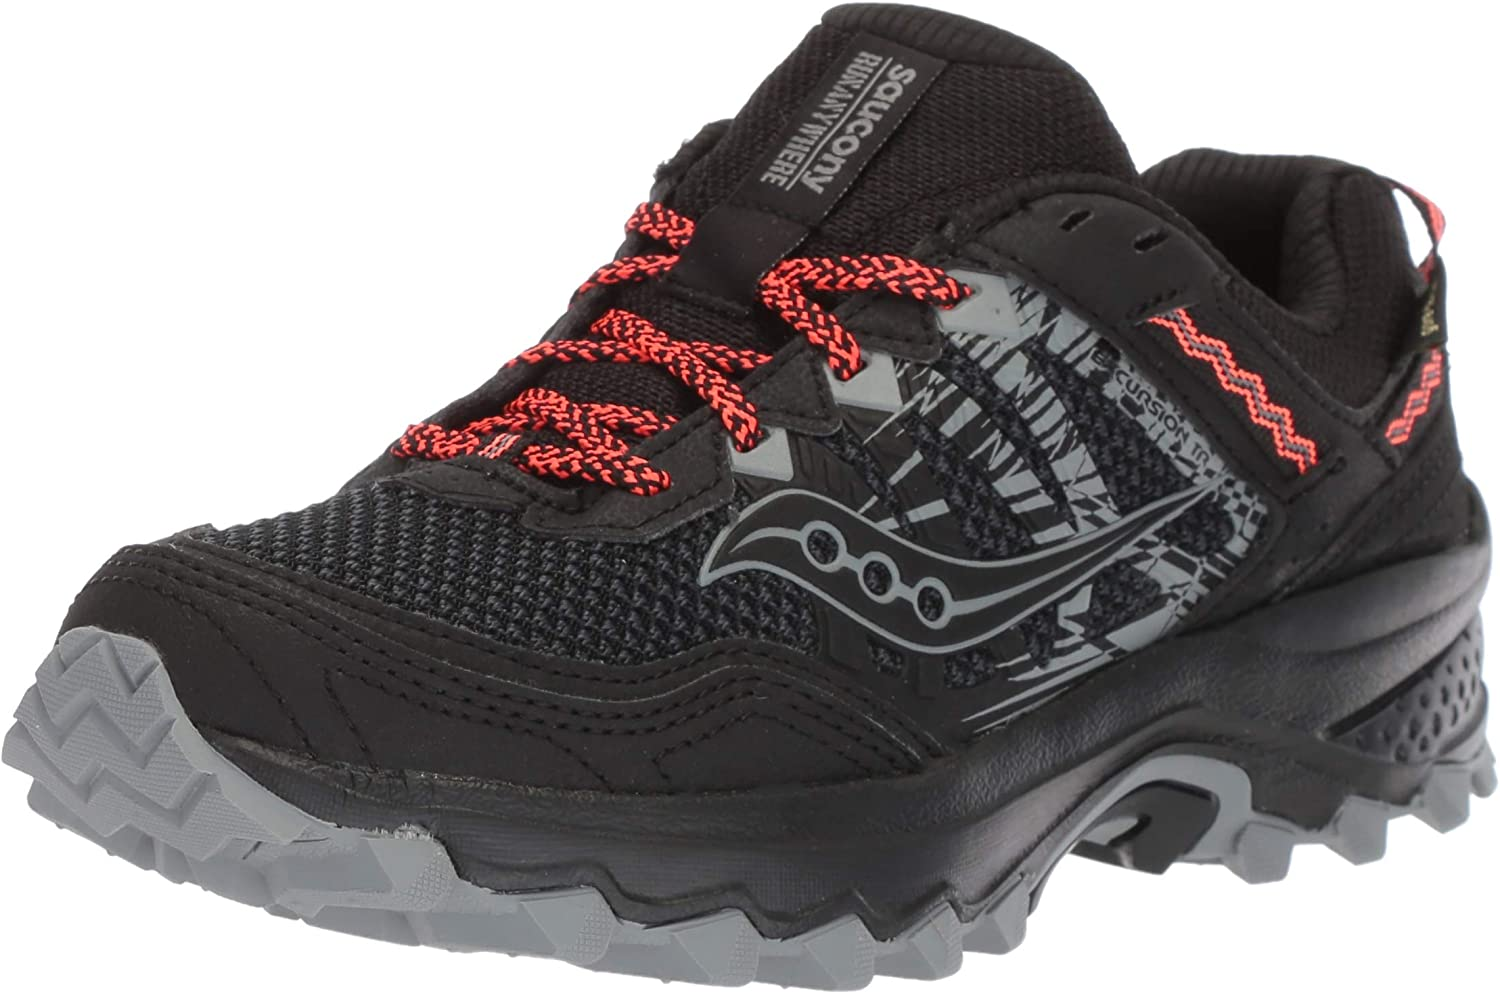 Excursion TR12 GTX Trail Running Shoes